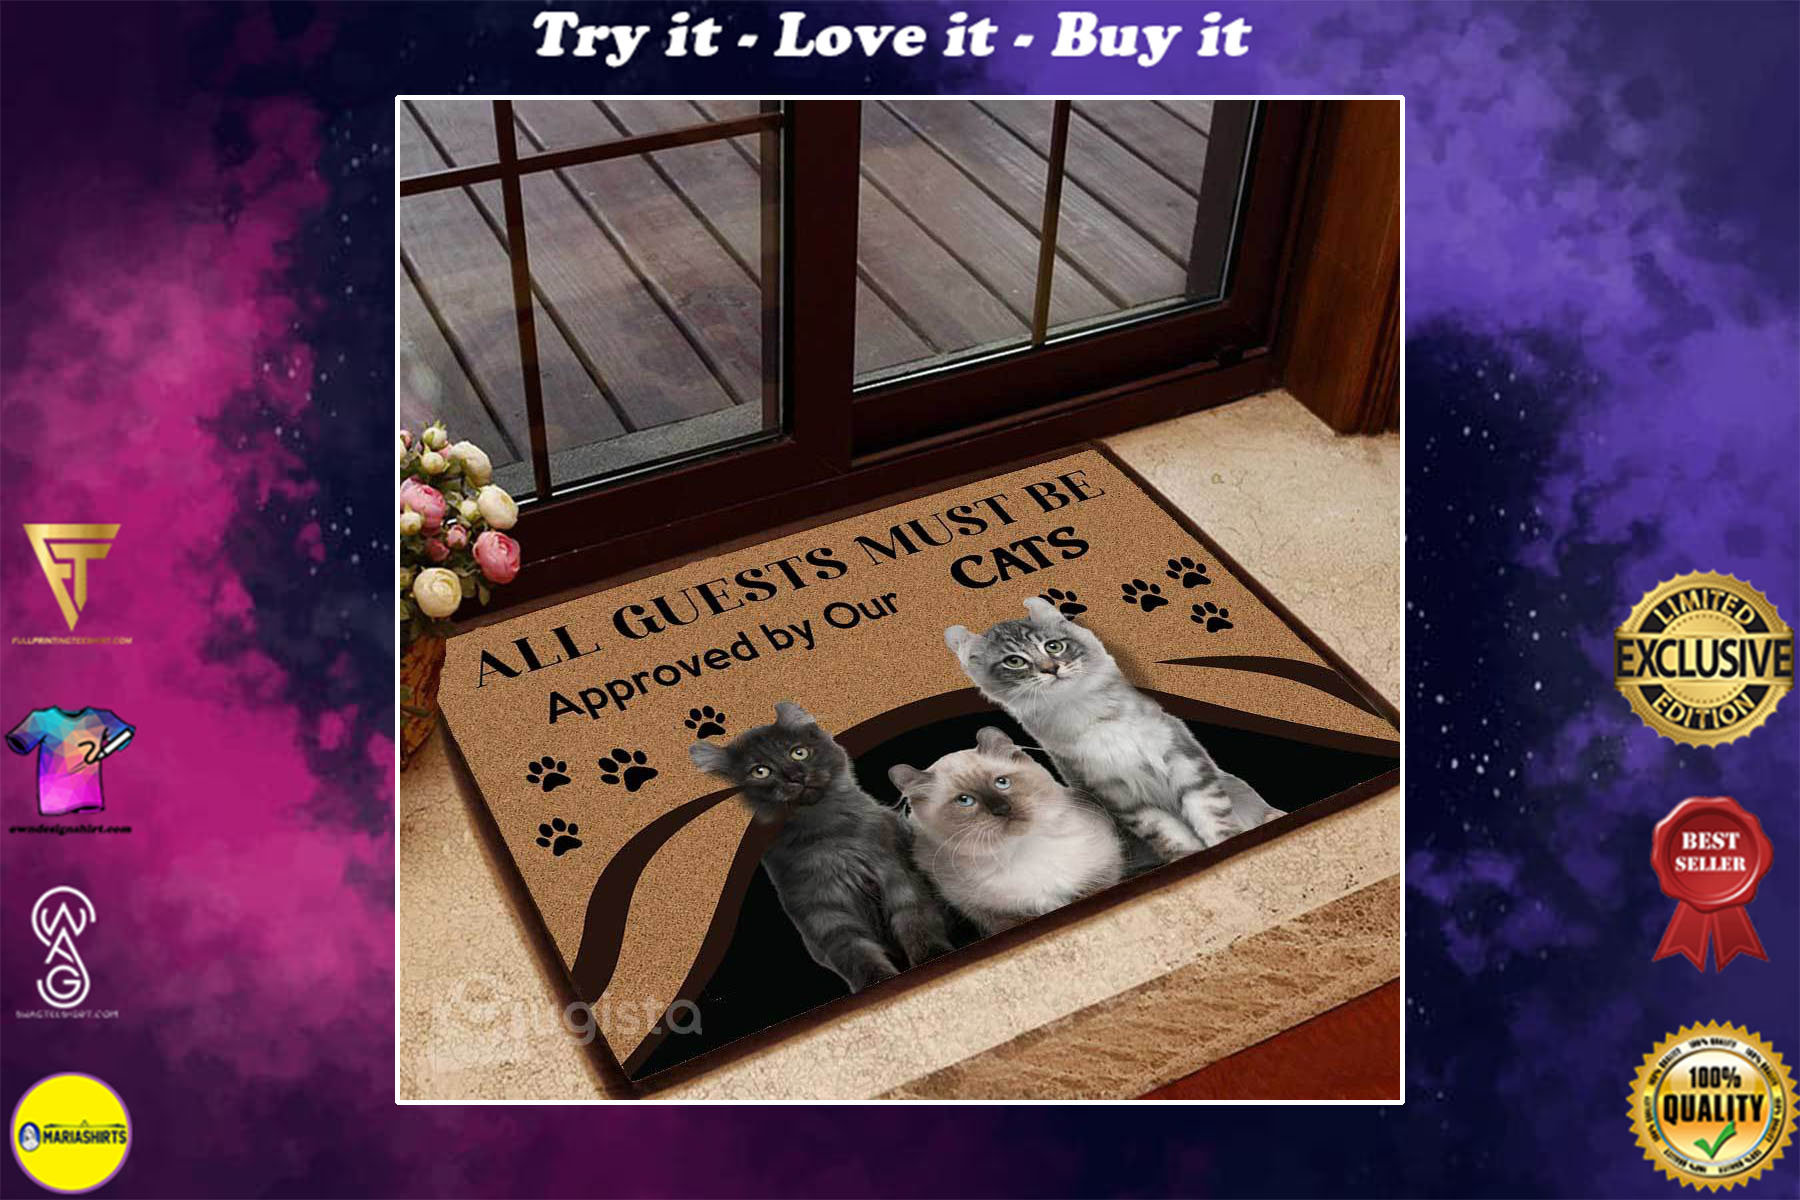 [special edition] all guests must be approved by our cats doormat - maria